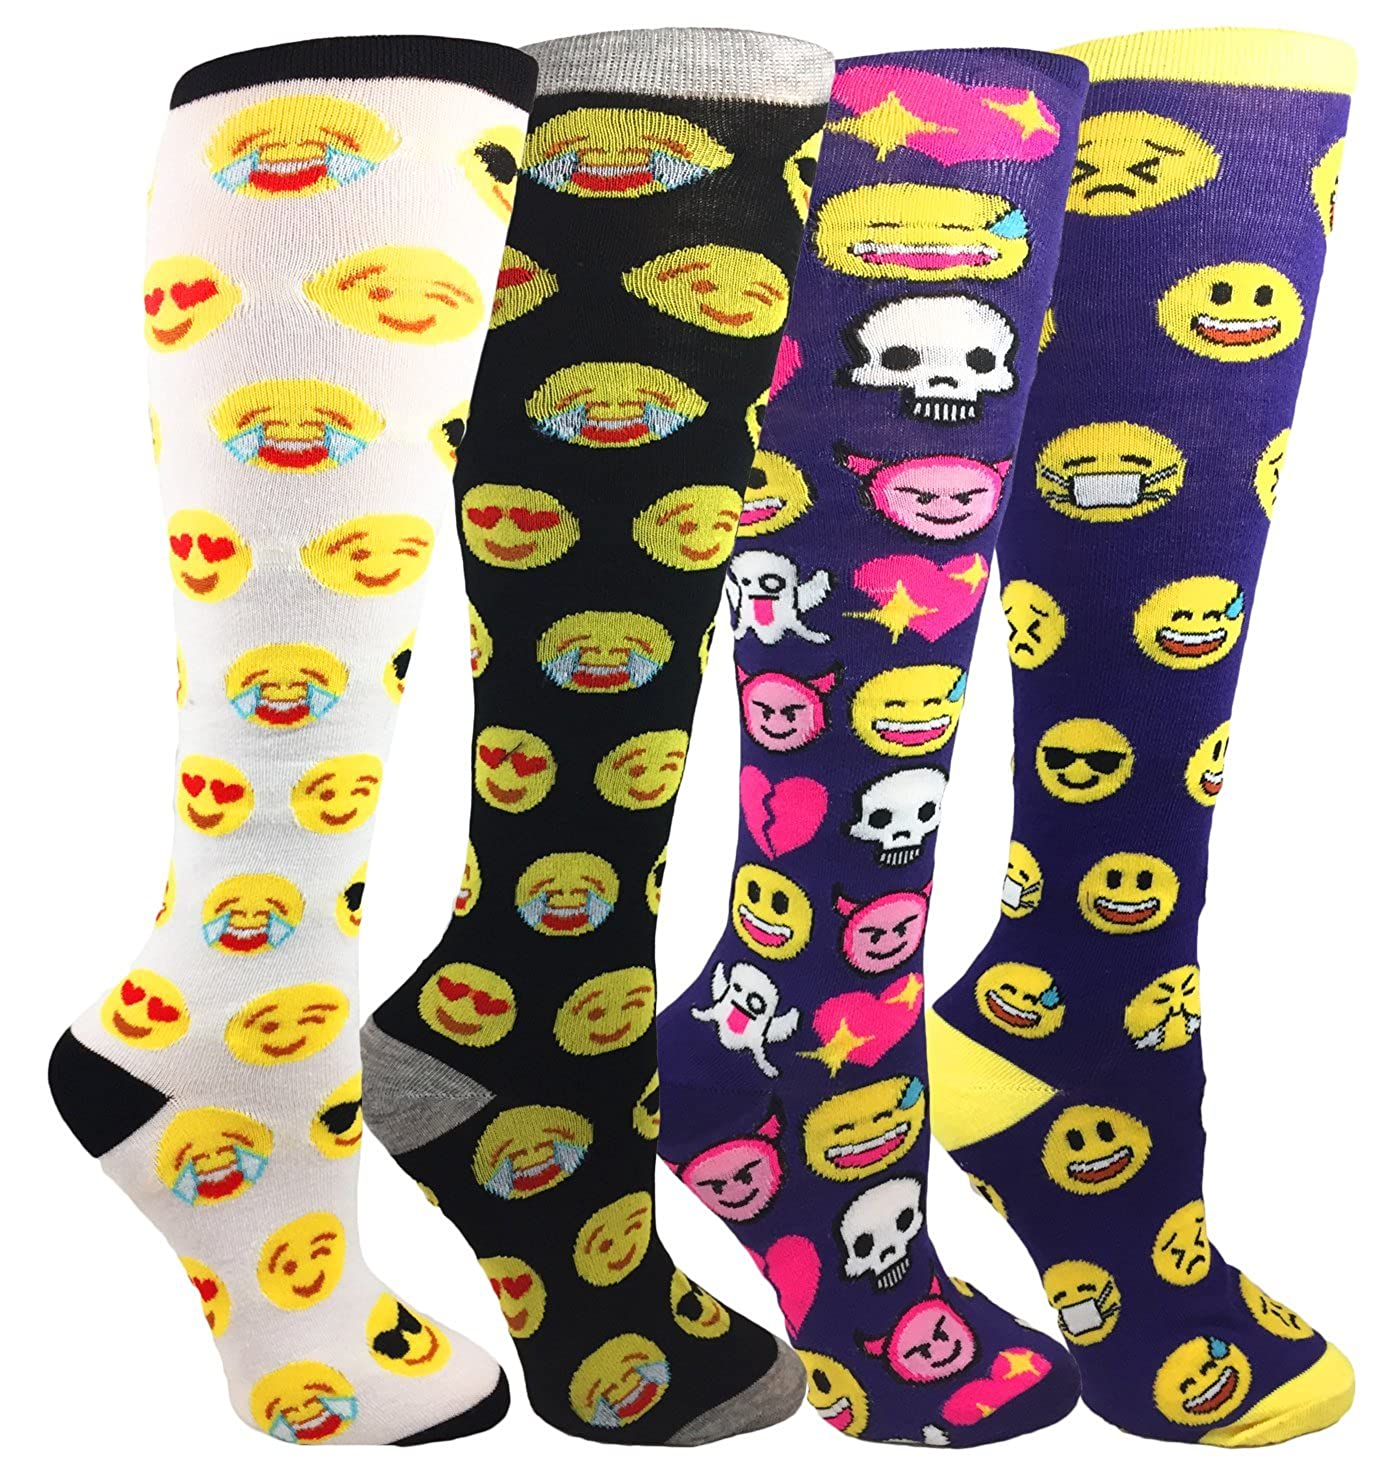 d0c005eb11f MOXY Socks Cute Emoji Party Faces Knee-High 4-Pack at Amazon Women s  Clothing store